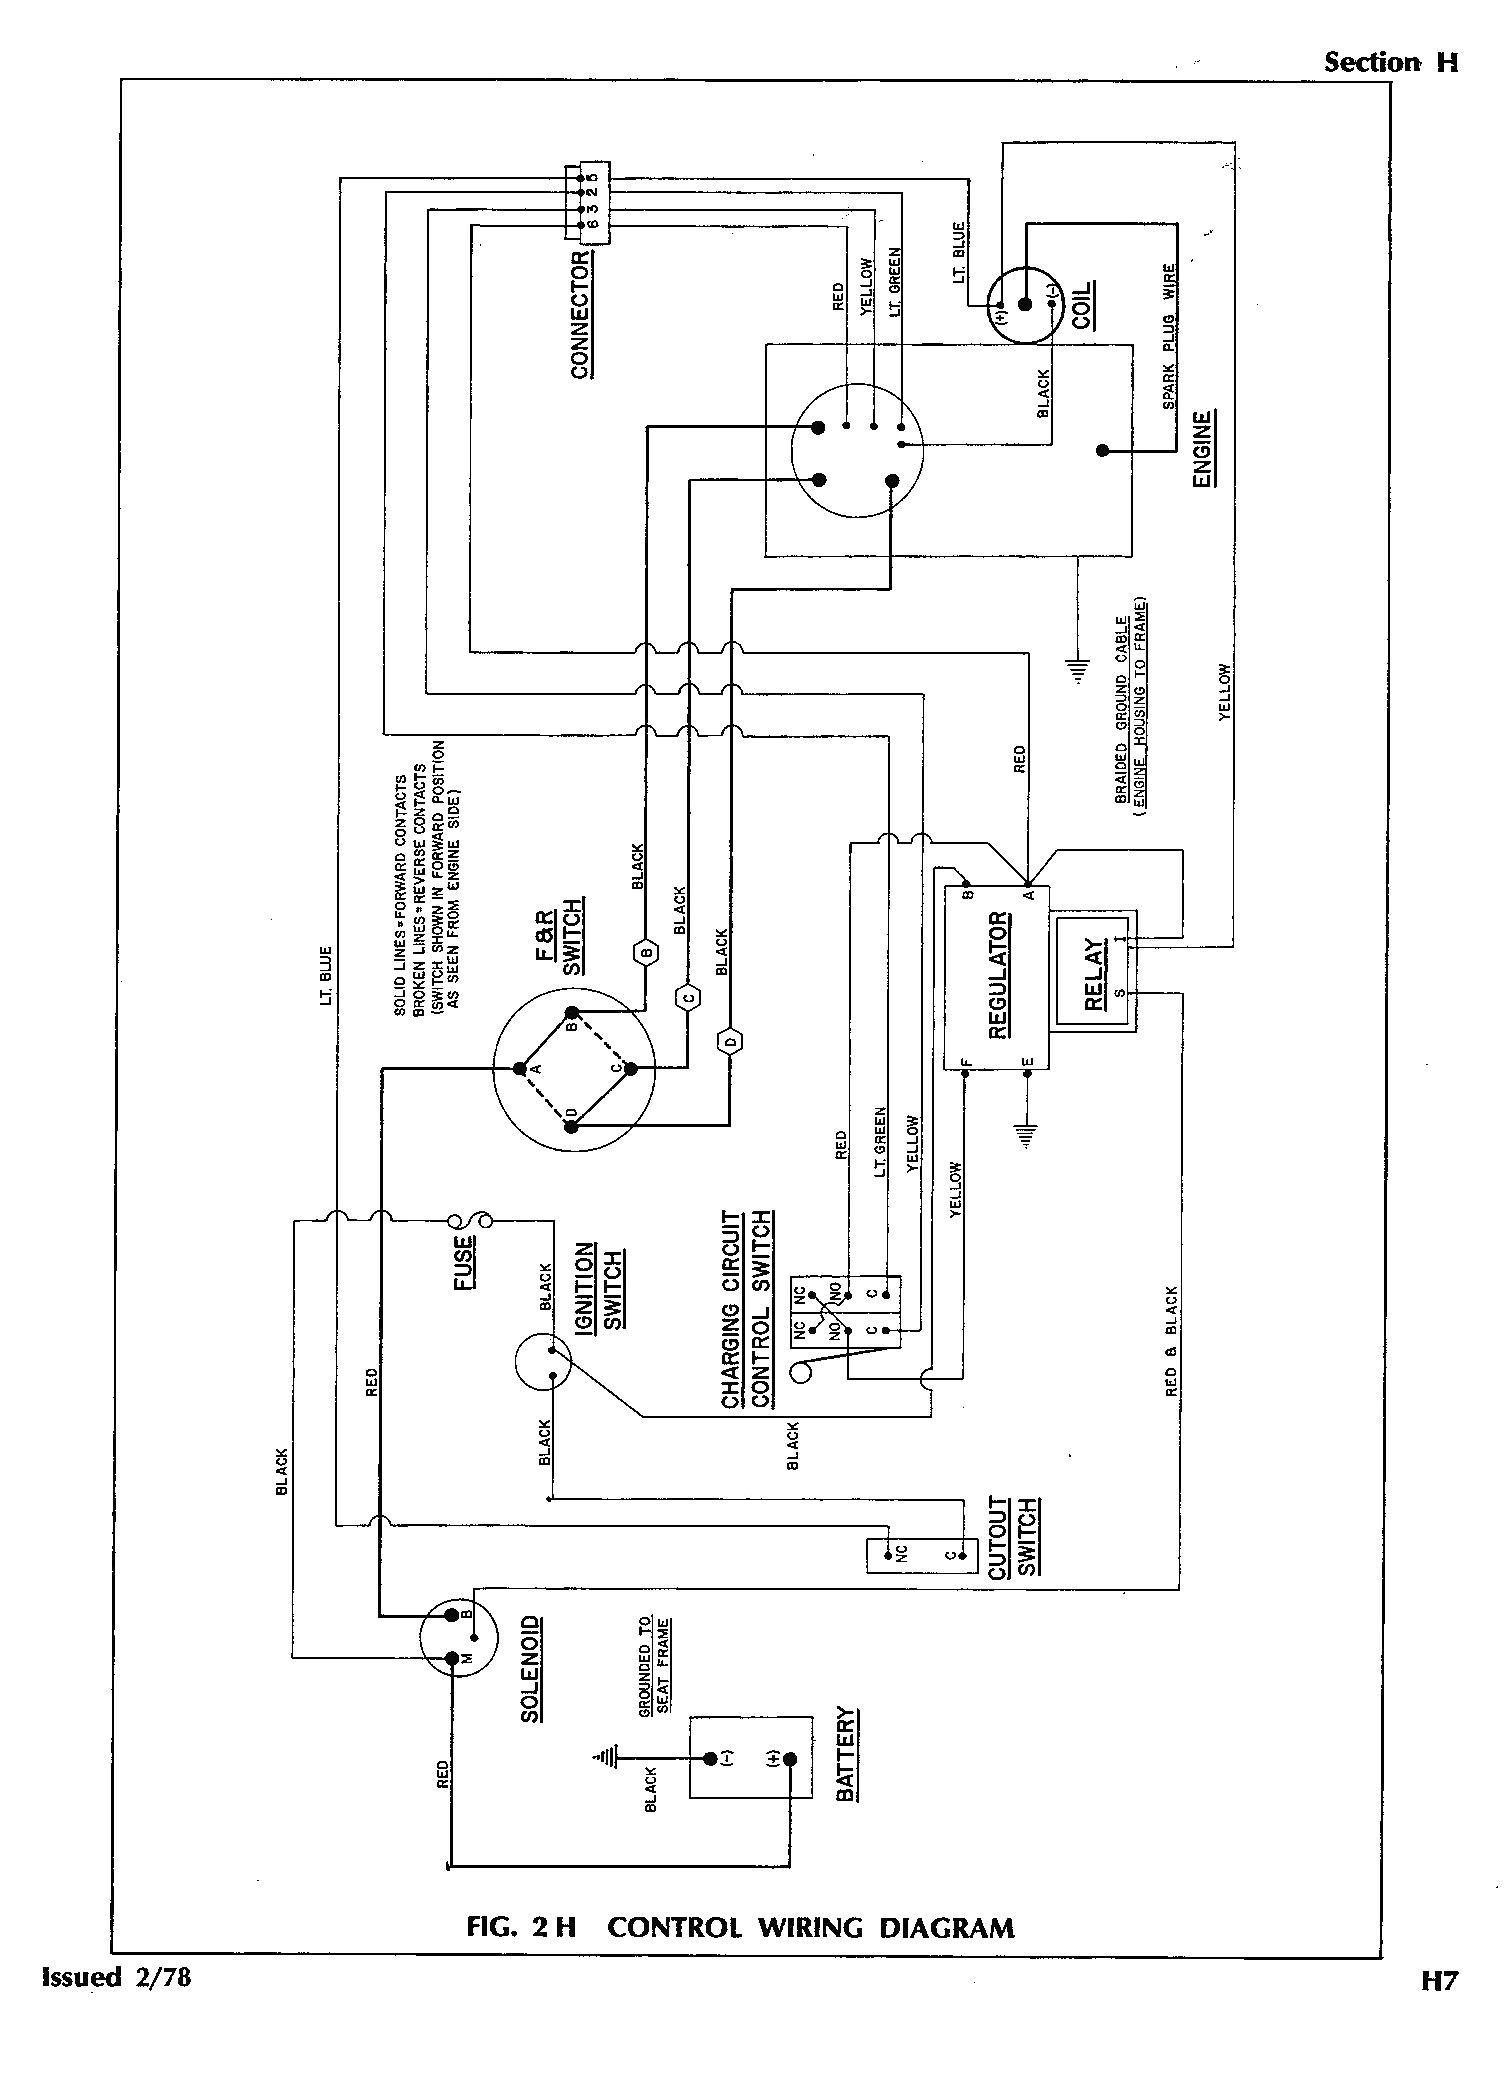 1998 Club Car Wiring Diagram 48 Volt Wiring Diagram Data